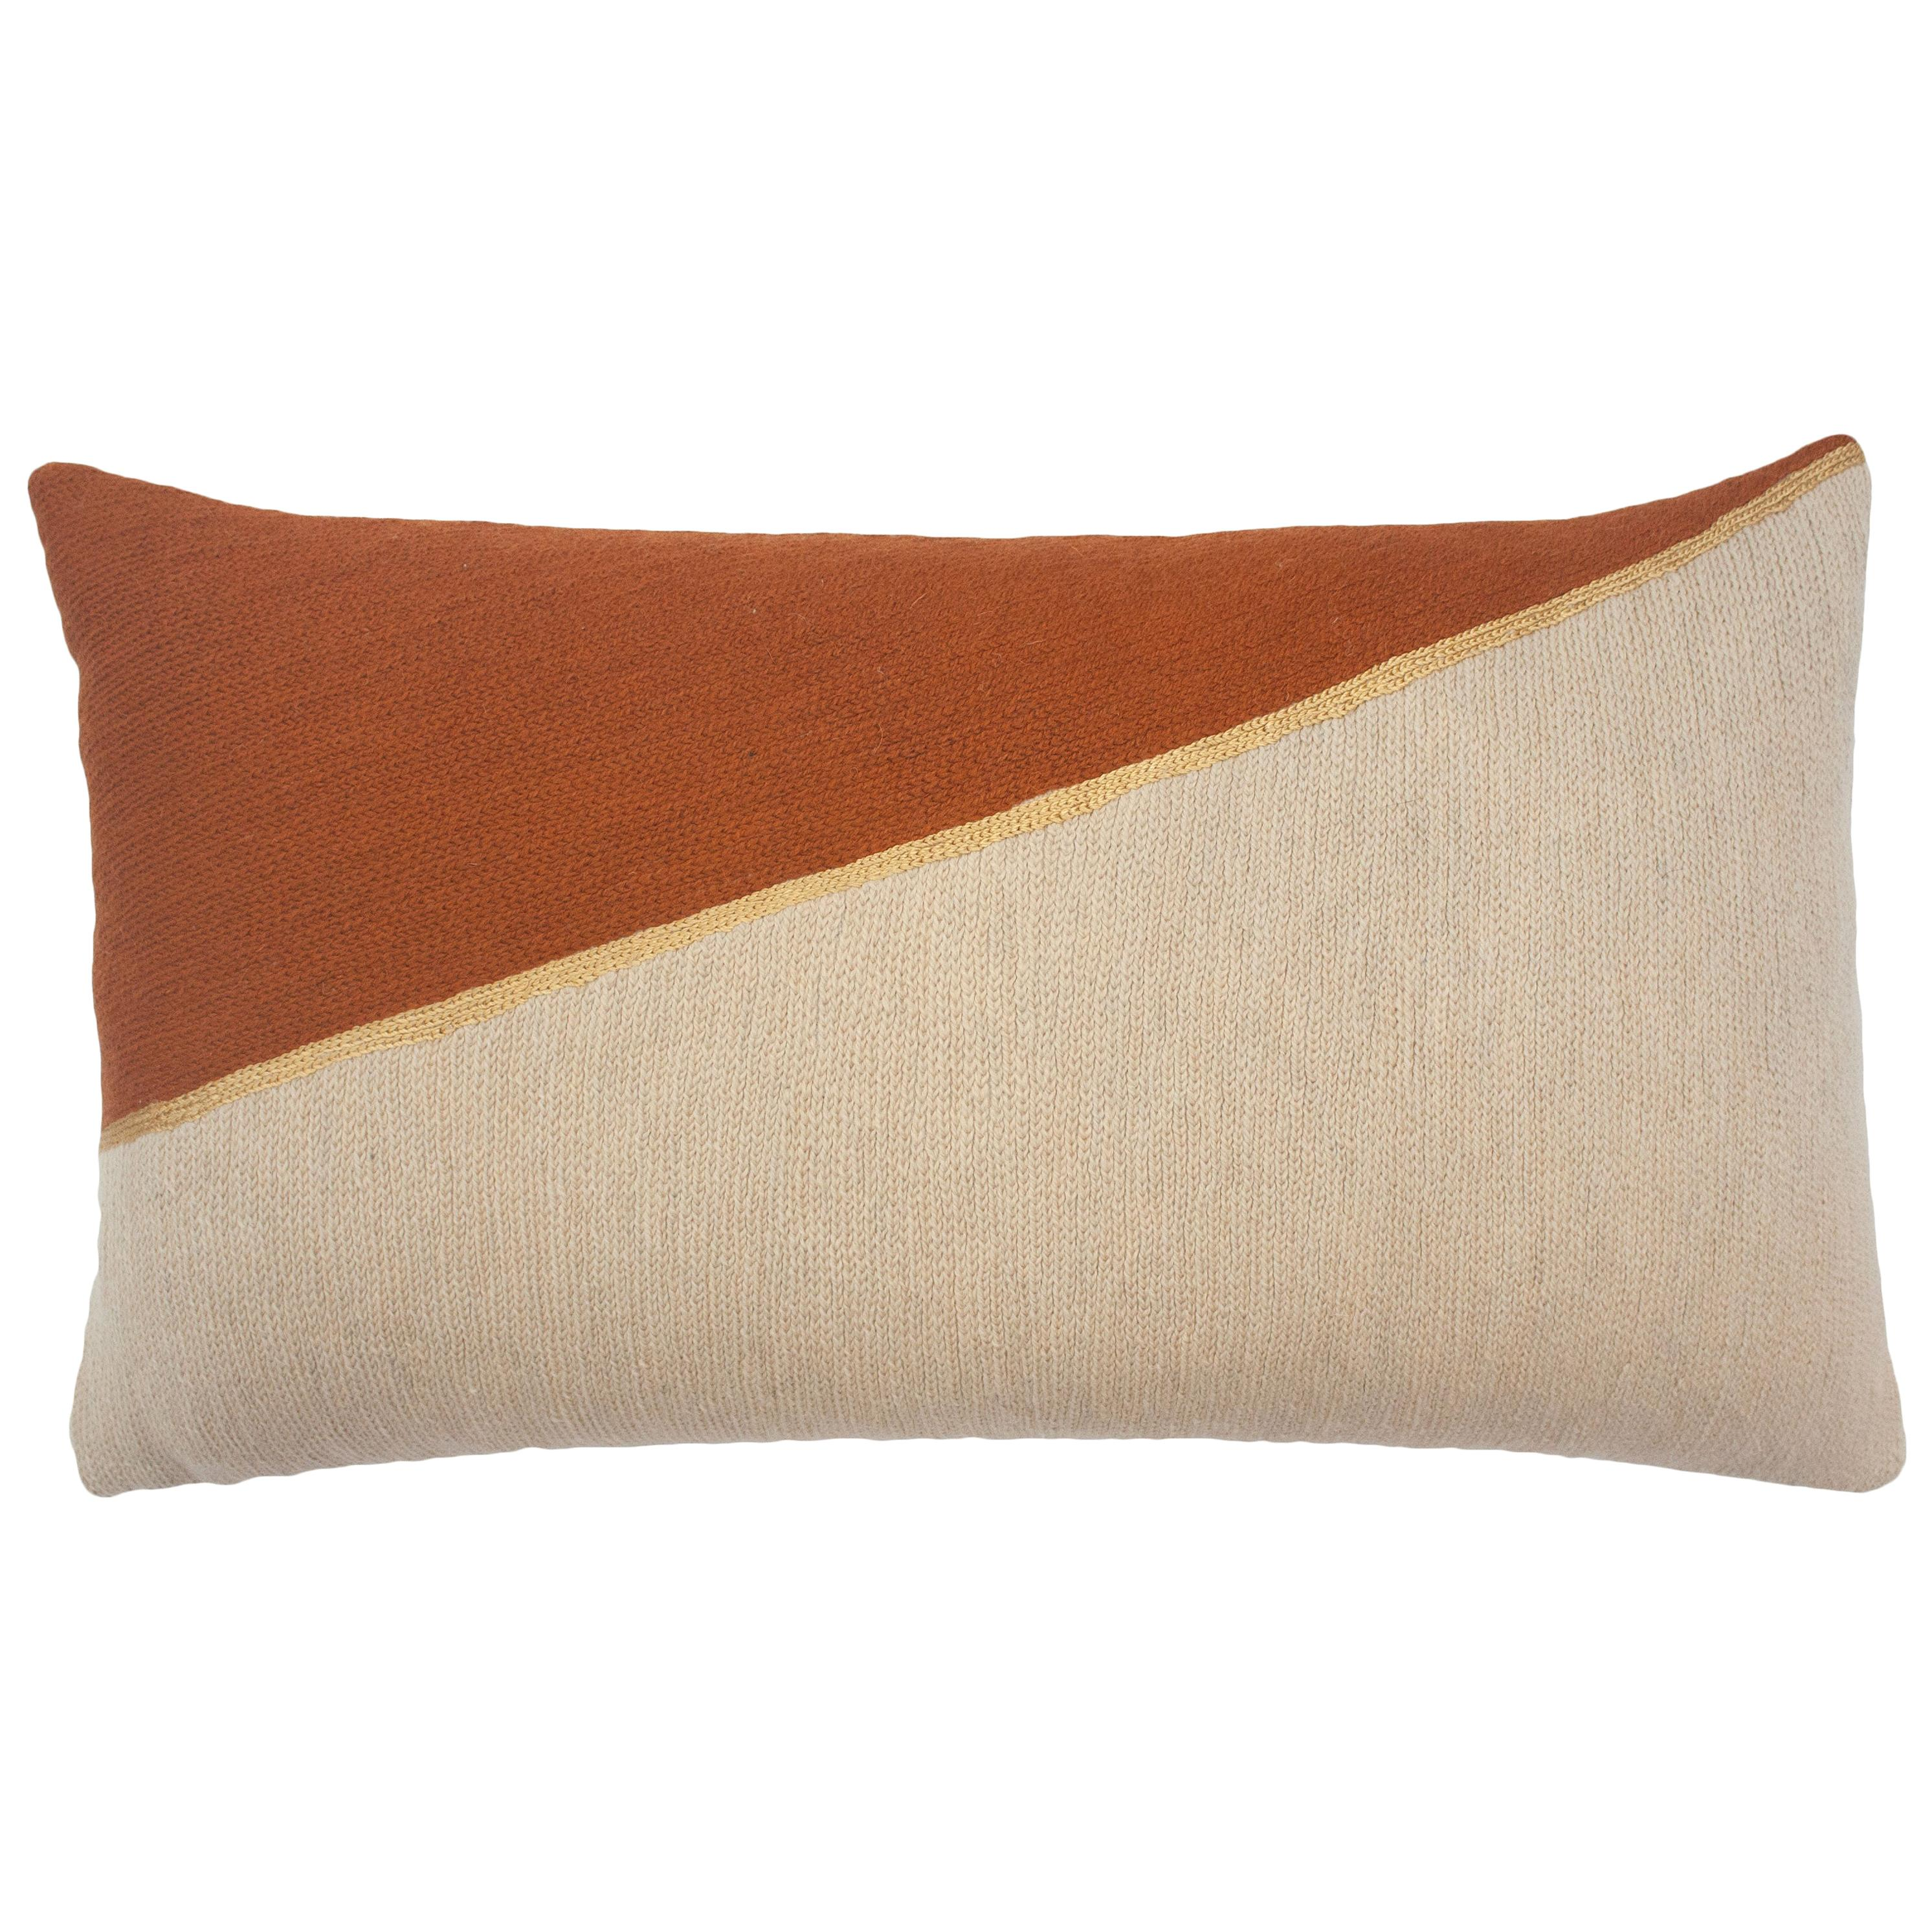 Marianne Triangle Ochre Hand Embroidered Modern Geometric Throw Pillow Cover